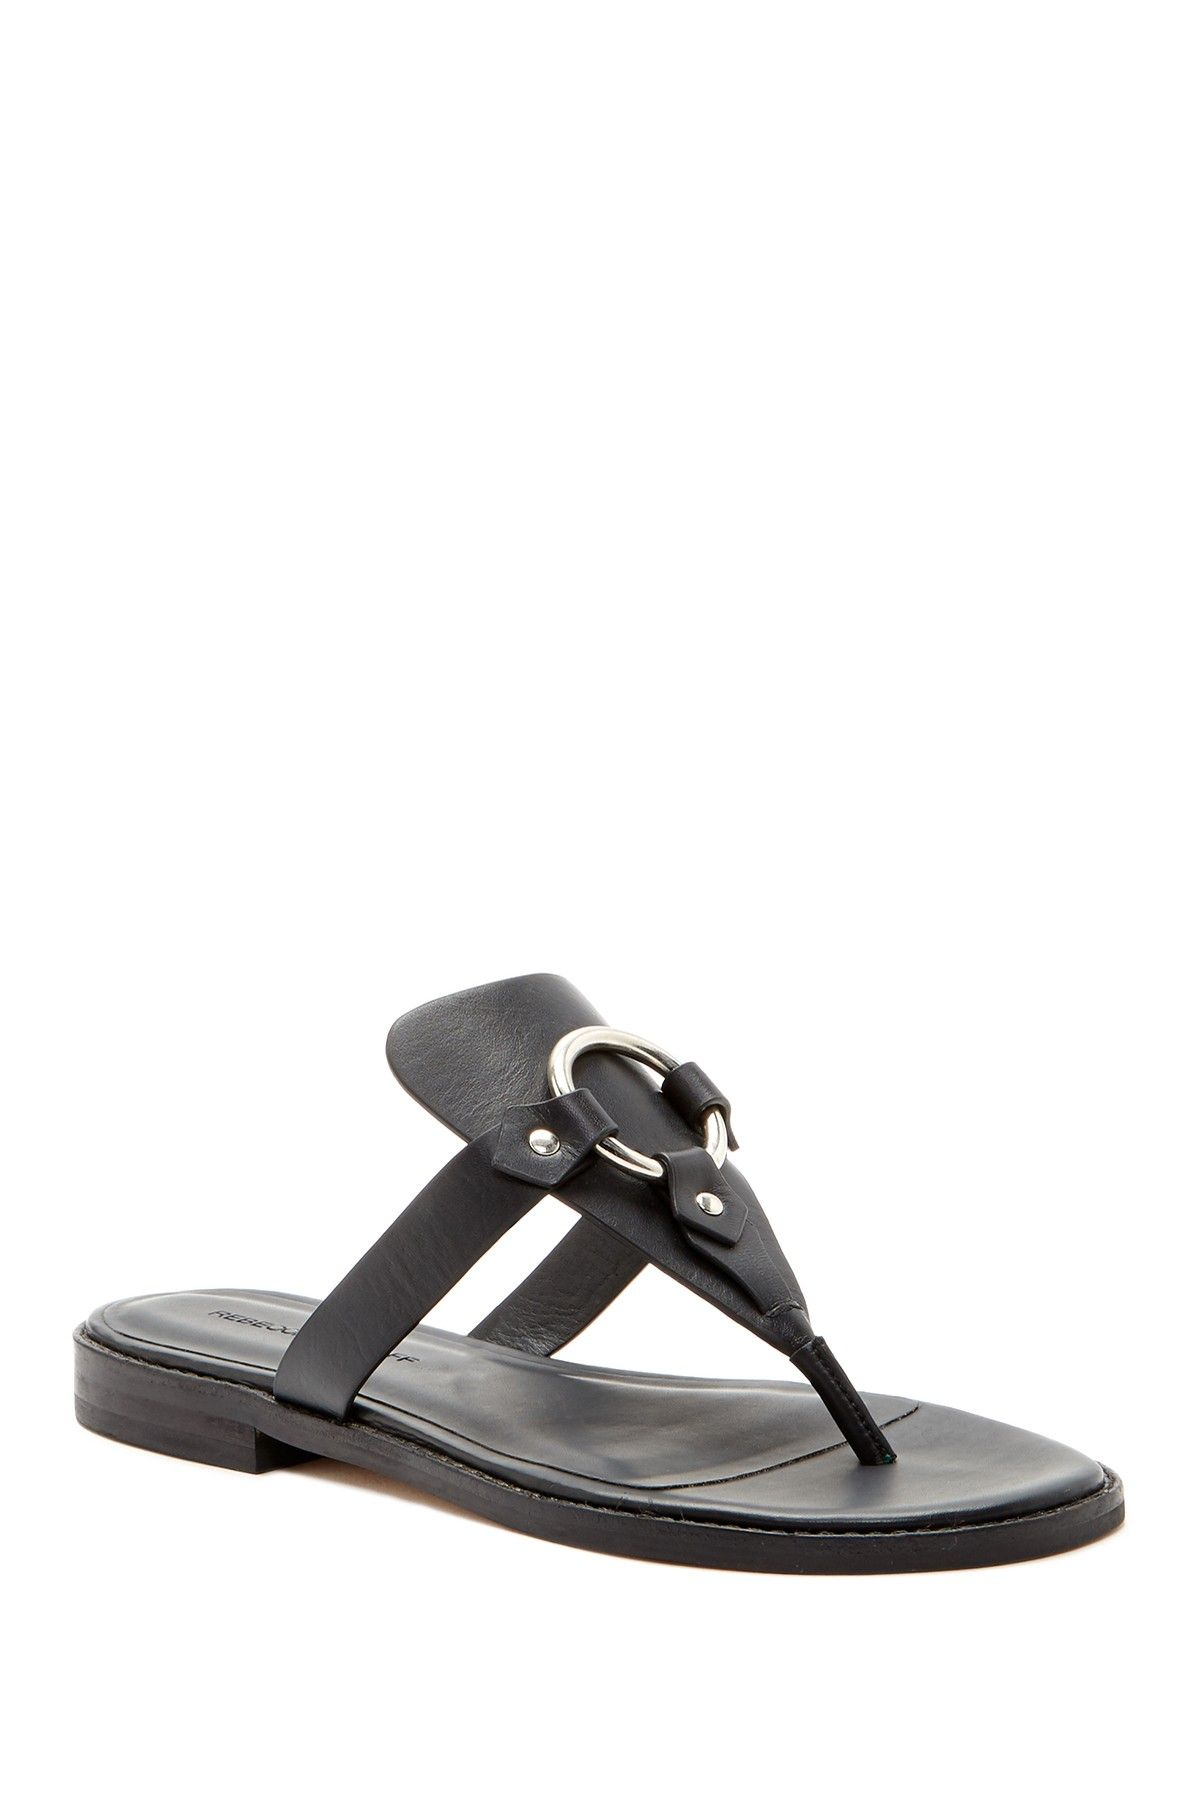 54ded1f55a9 Sheena Thong Sandal by Rebecca Minkoff on  nordstrom rack